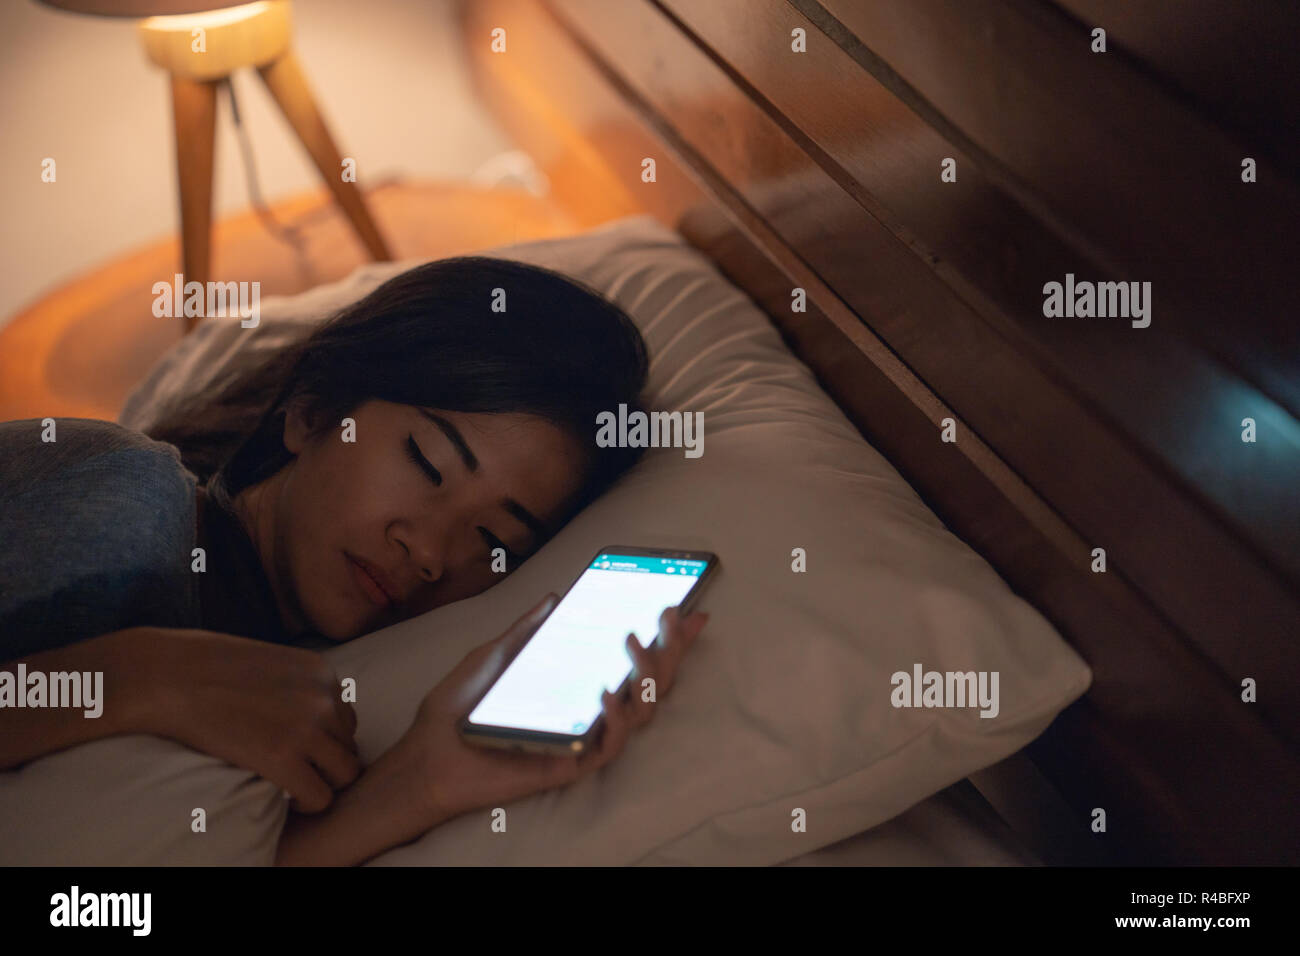 woman fell asleep after using mobile phone - Stock Image